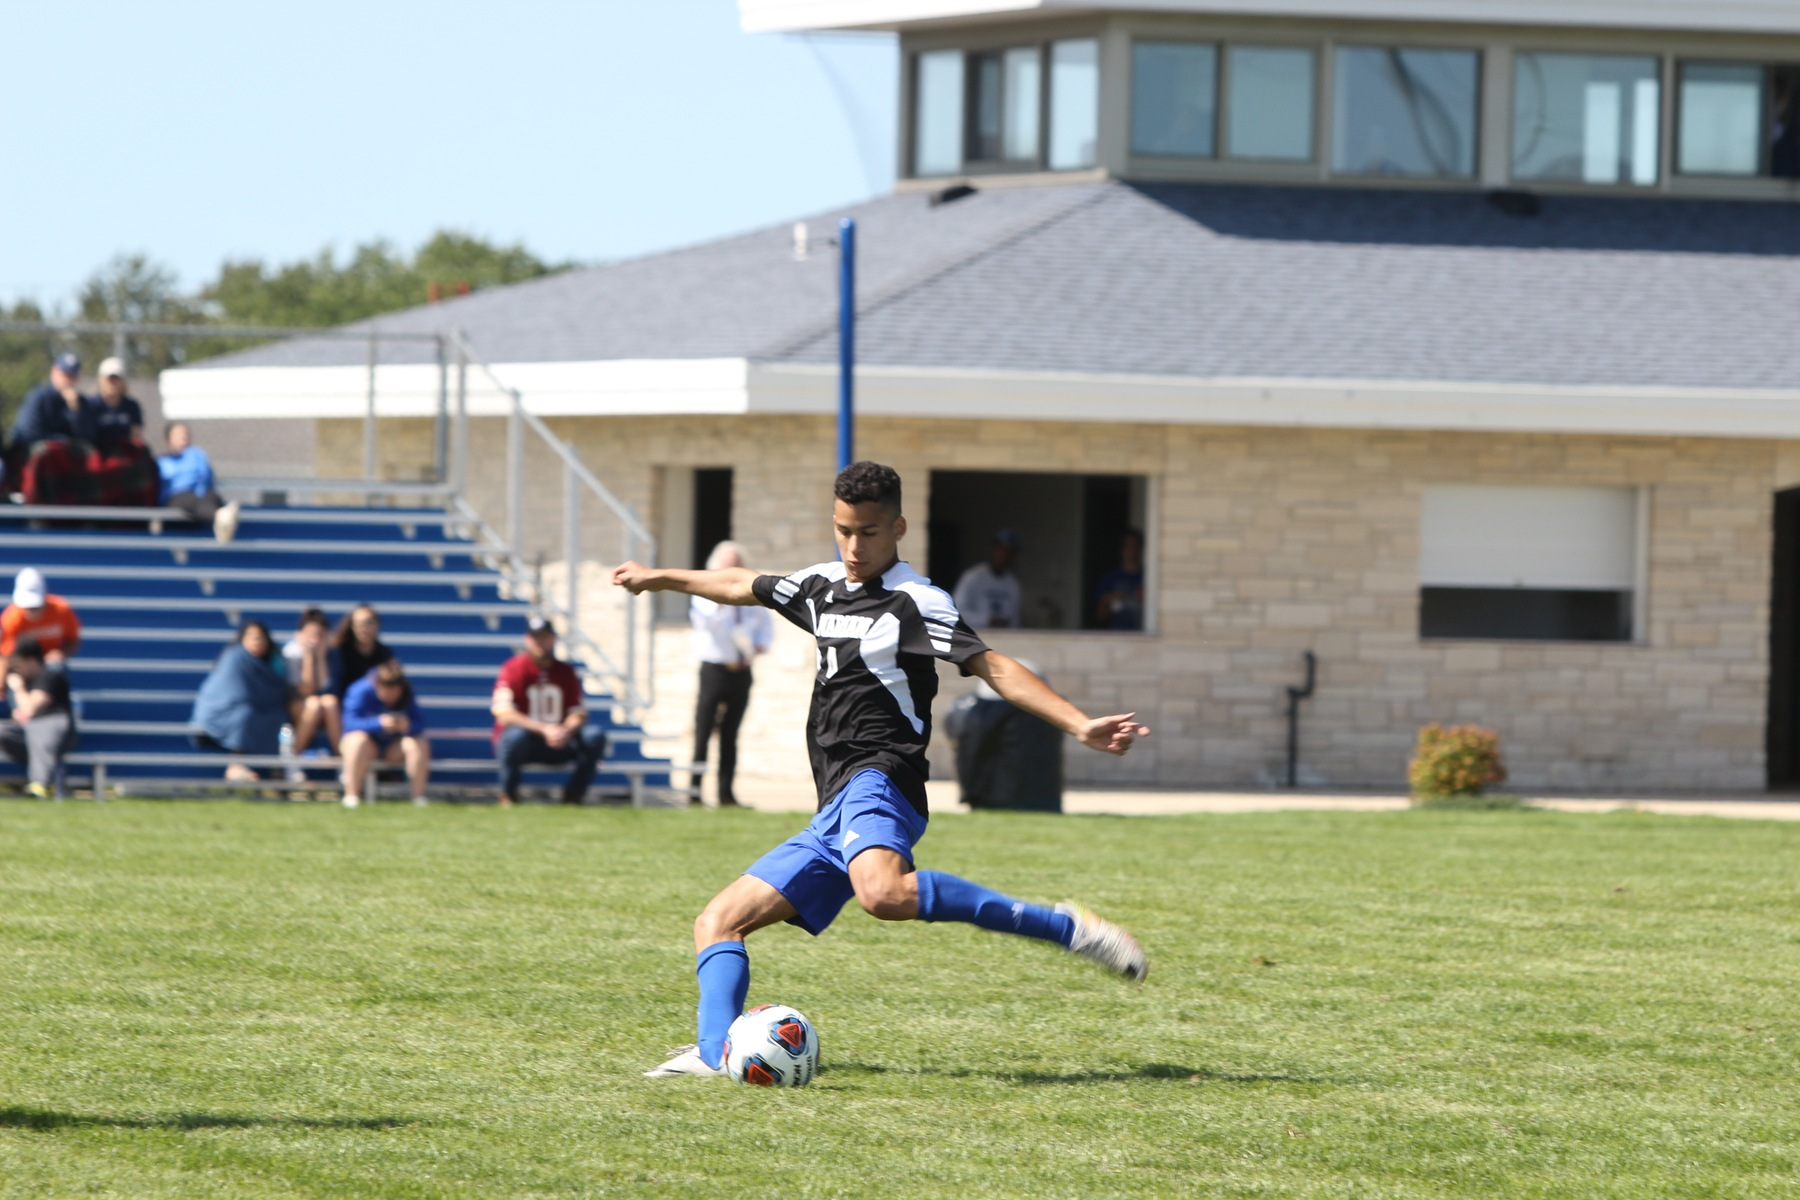 Brandon Mancini kicks the ball.